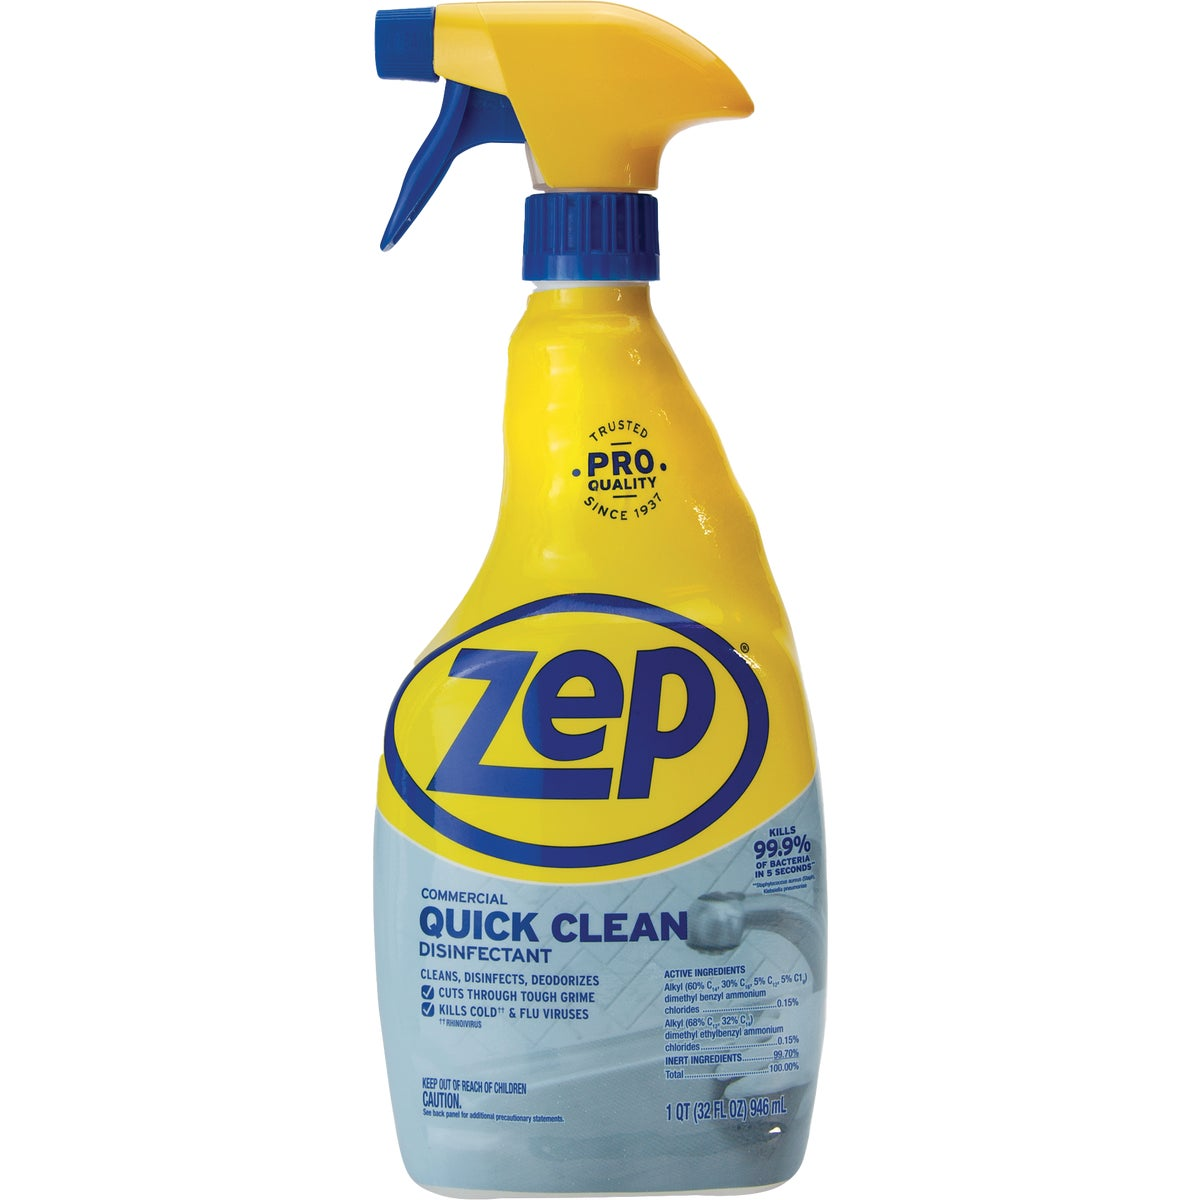 Zep Disinfectant Cleaner, ZUQCD32